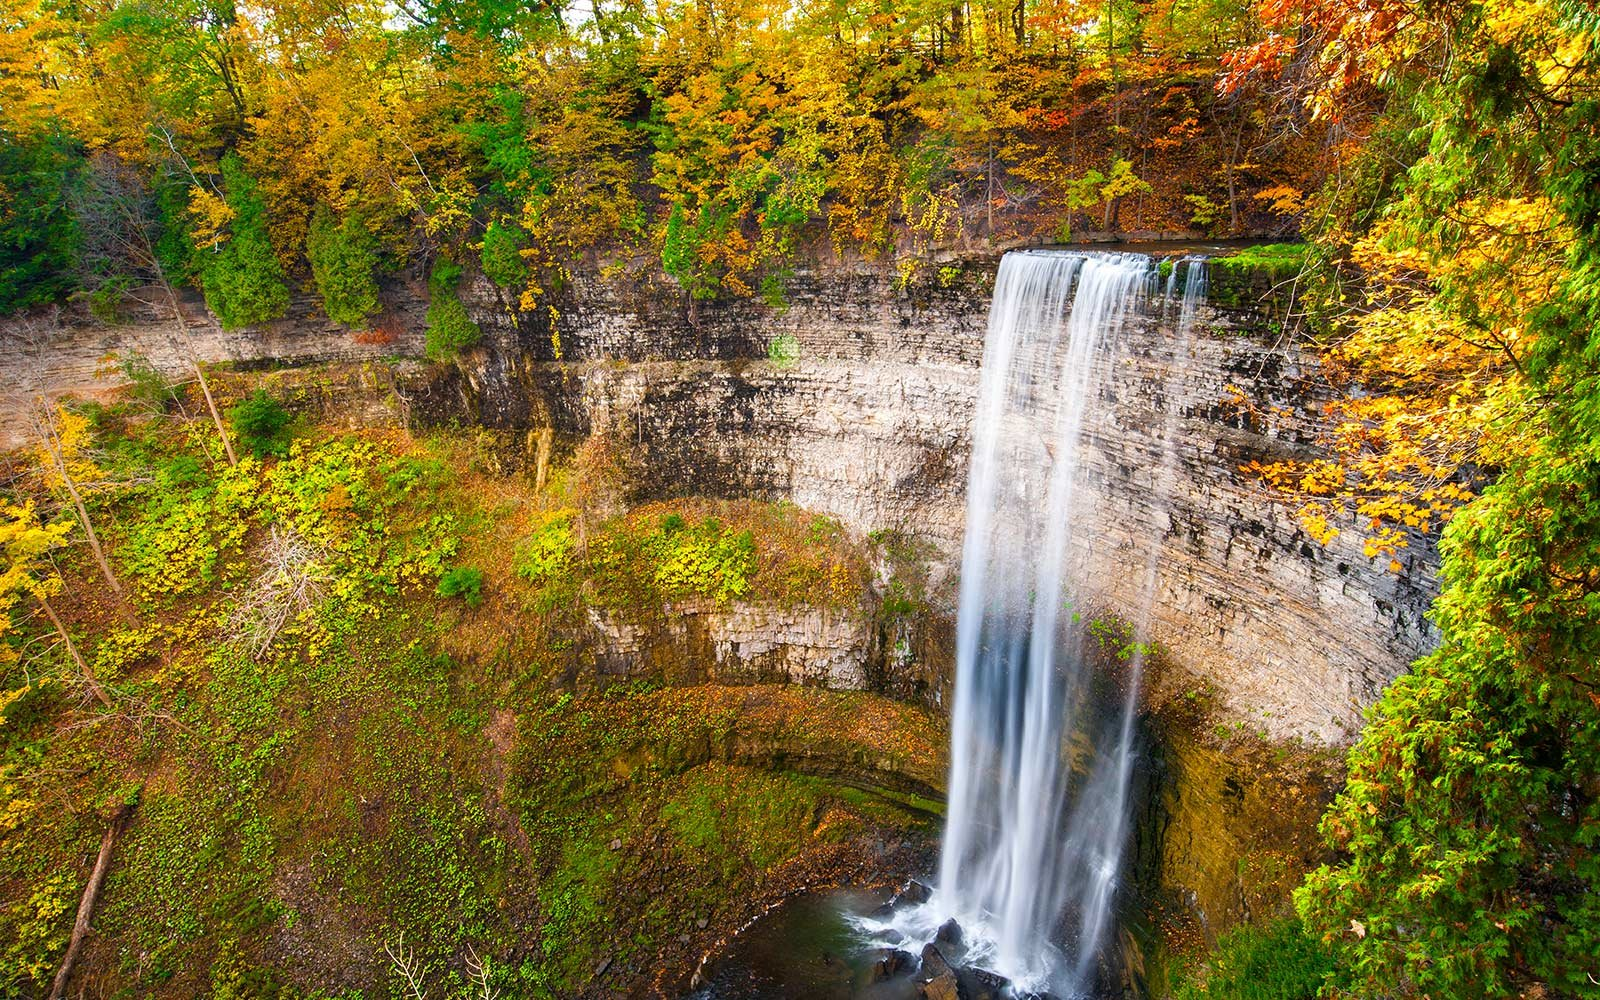 waterfalls in Webster's fall park, Hamilton, Ontario, Canada